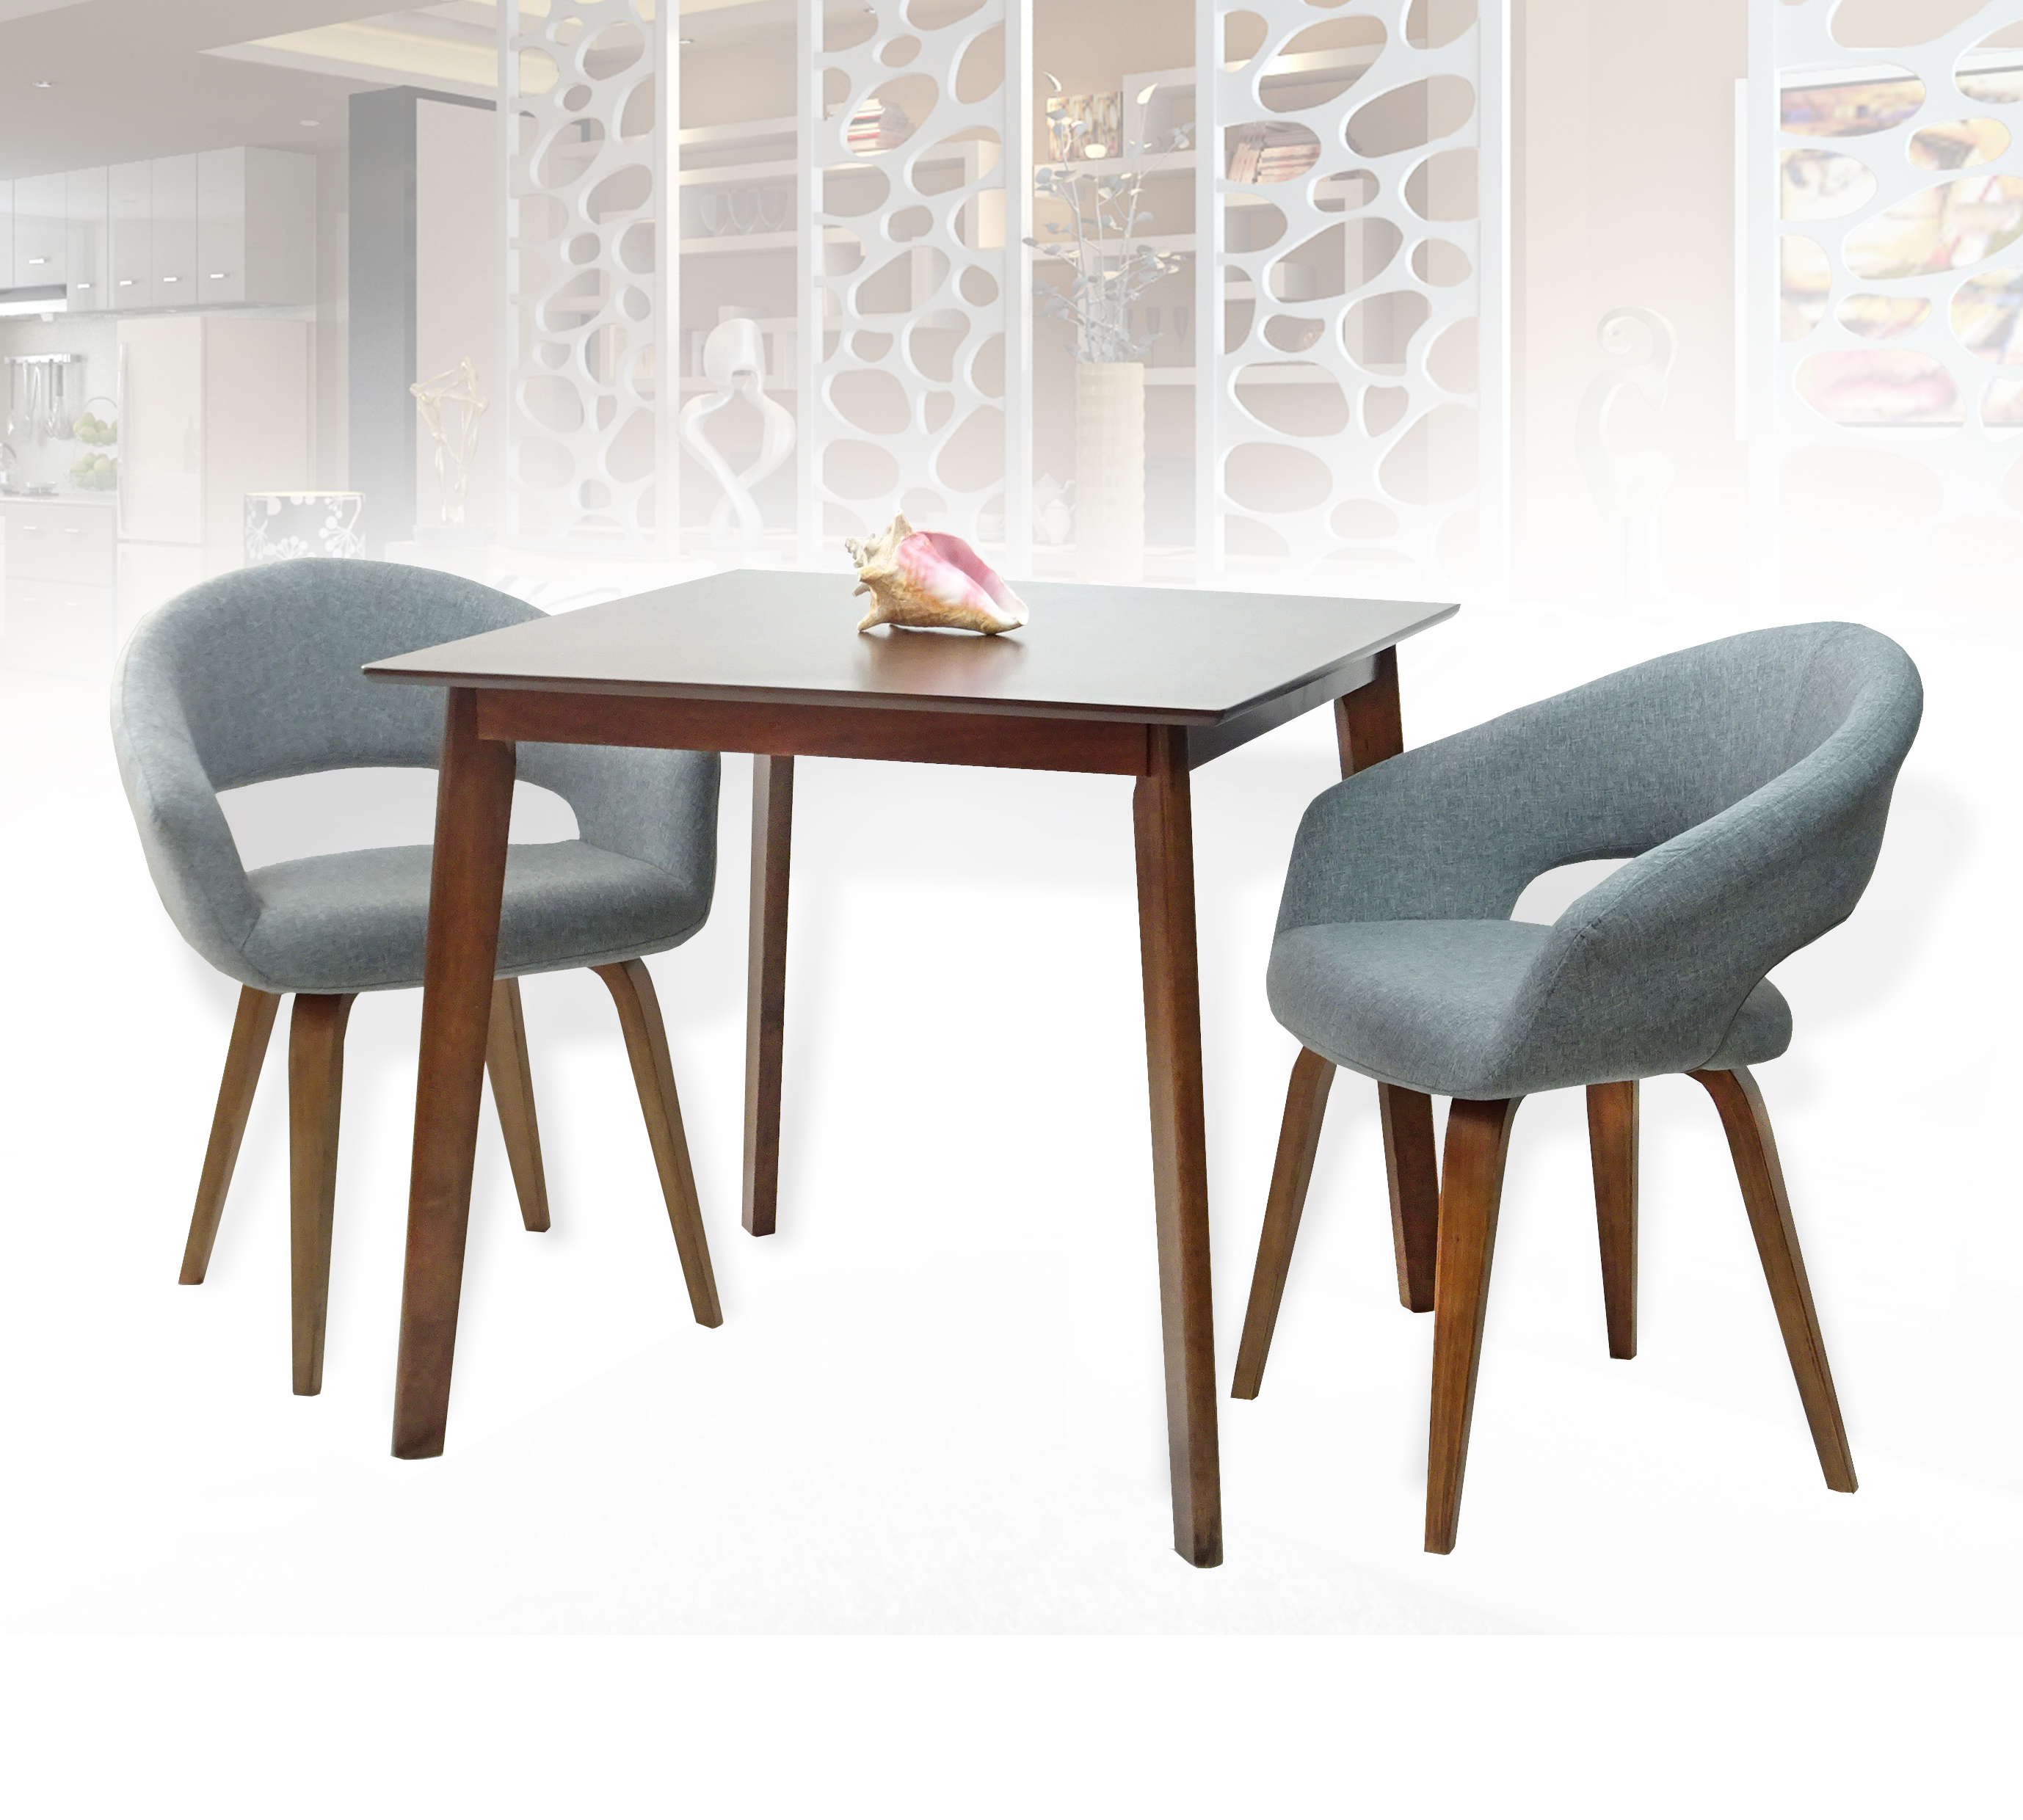 Fantastic Dining Kitchen Set Of 3 Square Wooden Medium Brown Table With 2 Lagos Armchairs Light Gray Color Theyellowbook Wood Chair Design Ideas Theyellowbookinfo